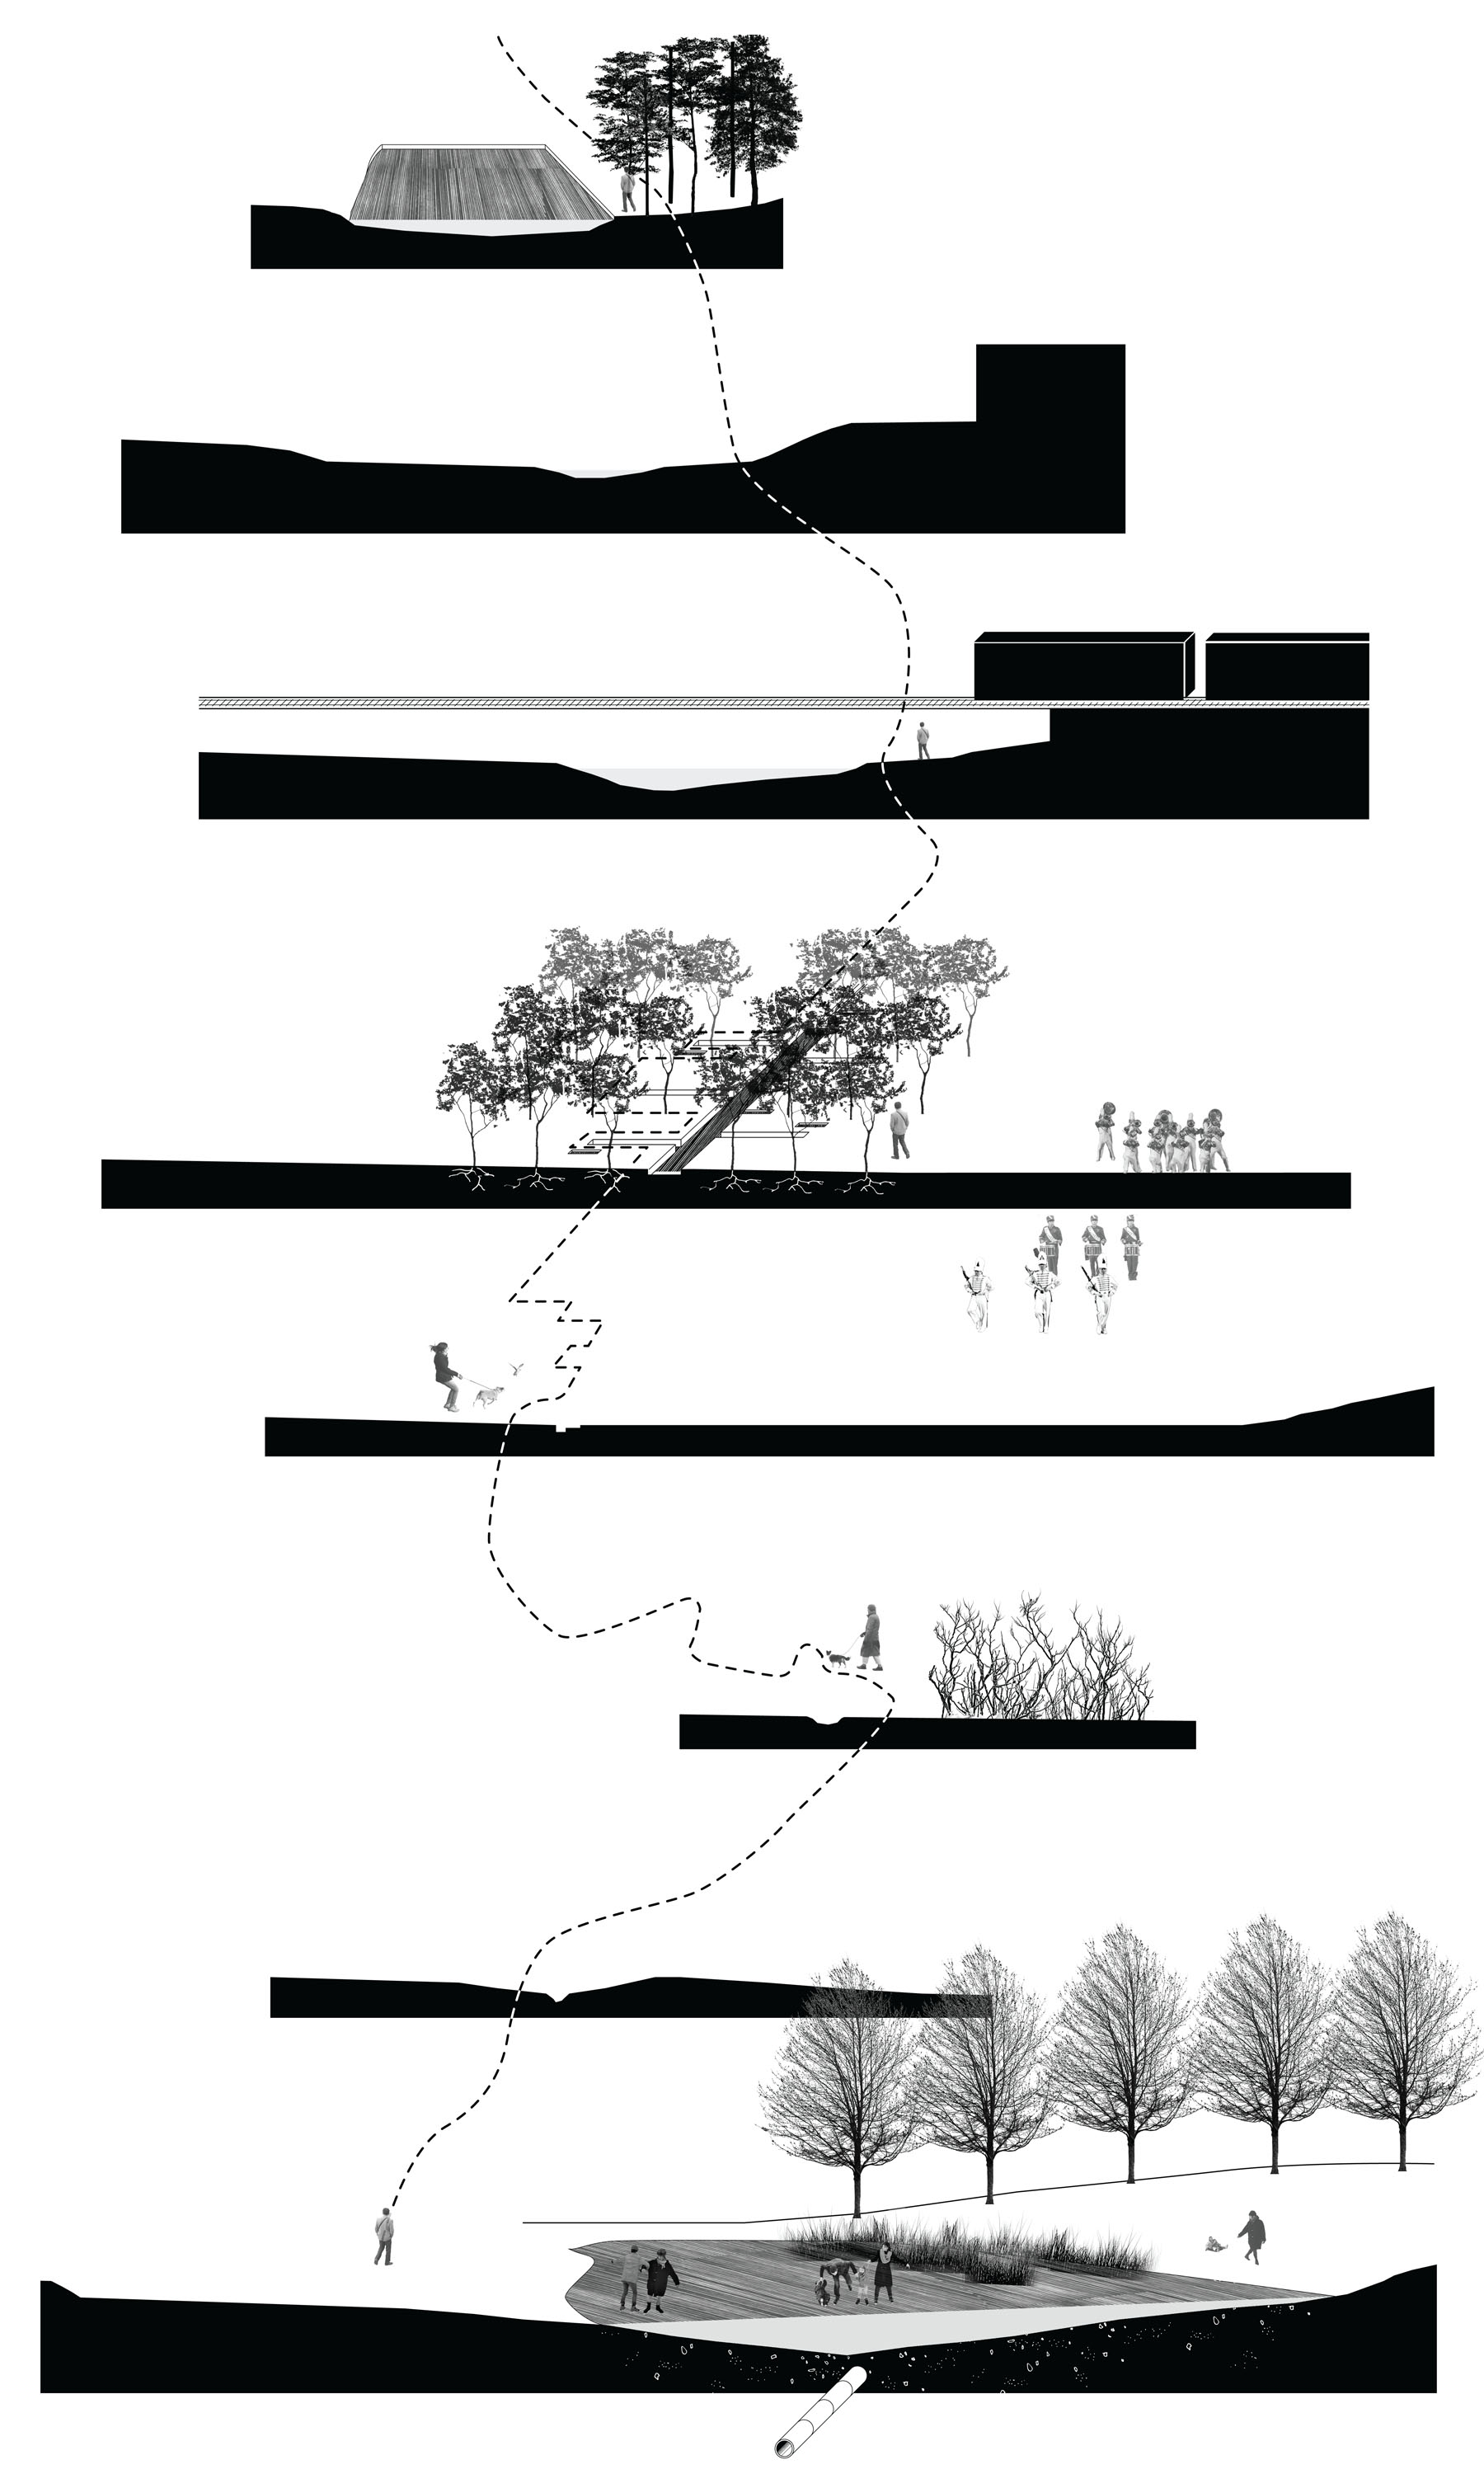 Serial sections of the proposed path along Meadow Creek, which shows the reciprocal interaction of people and water.